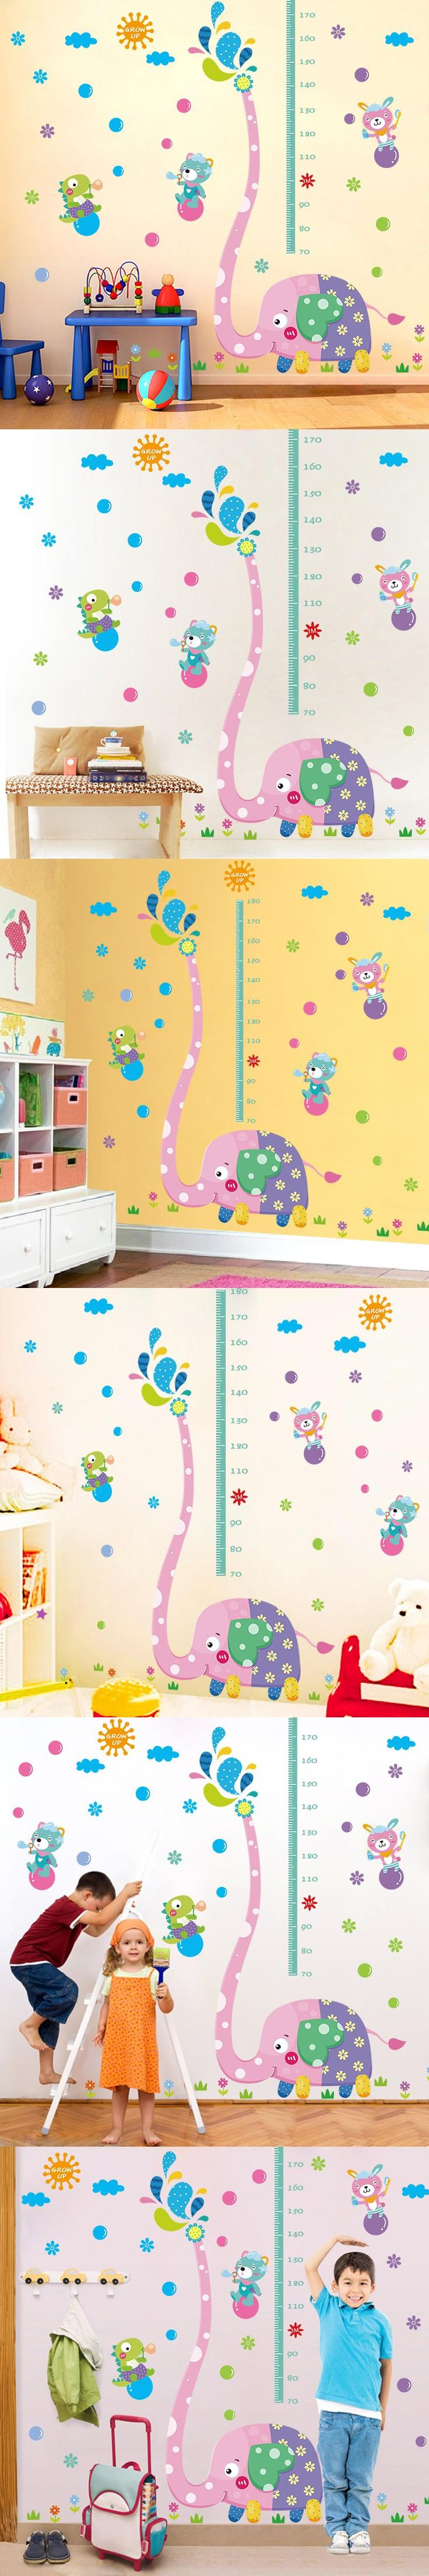 Elephant Kids Height Chart DIY Wall Stickers Home Decor Cartoon Grow Height Ruler for House Decoration Room Decal Viny Wallpaper